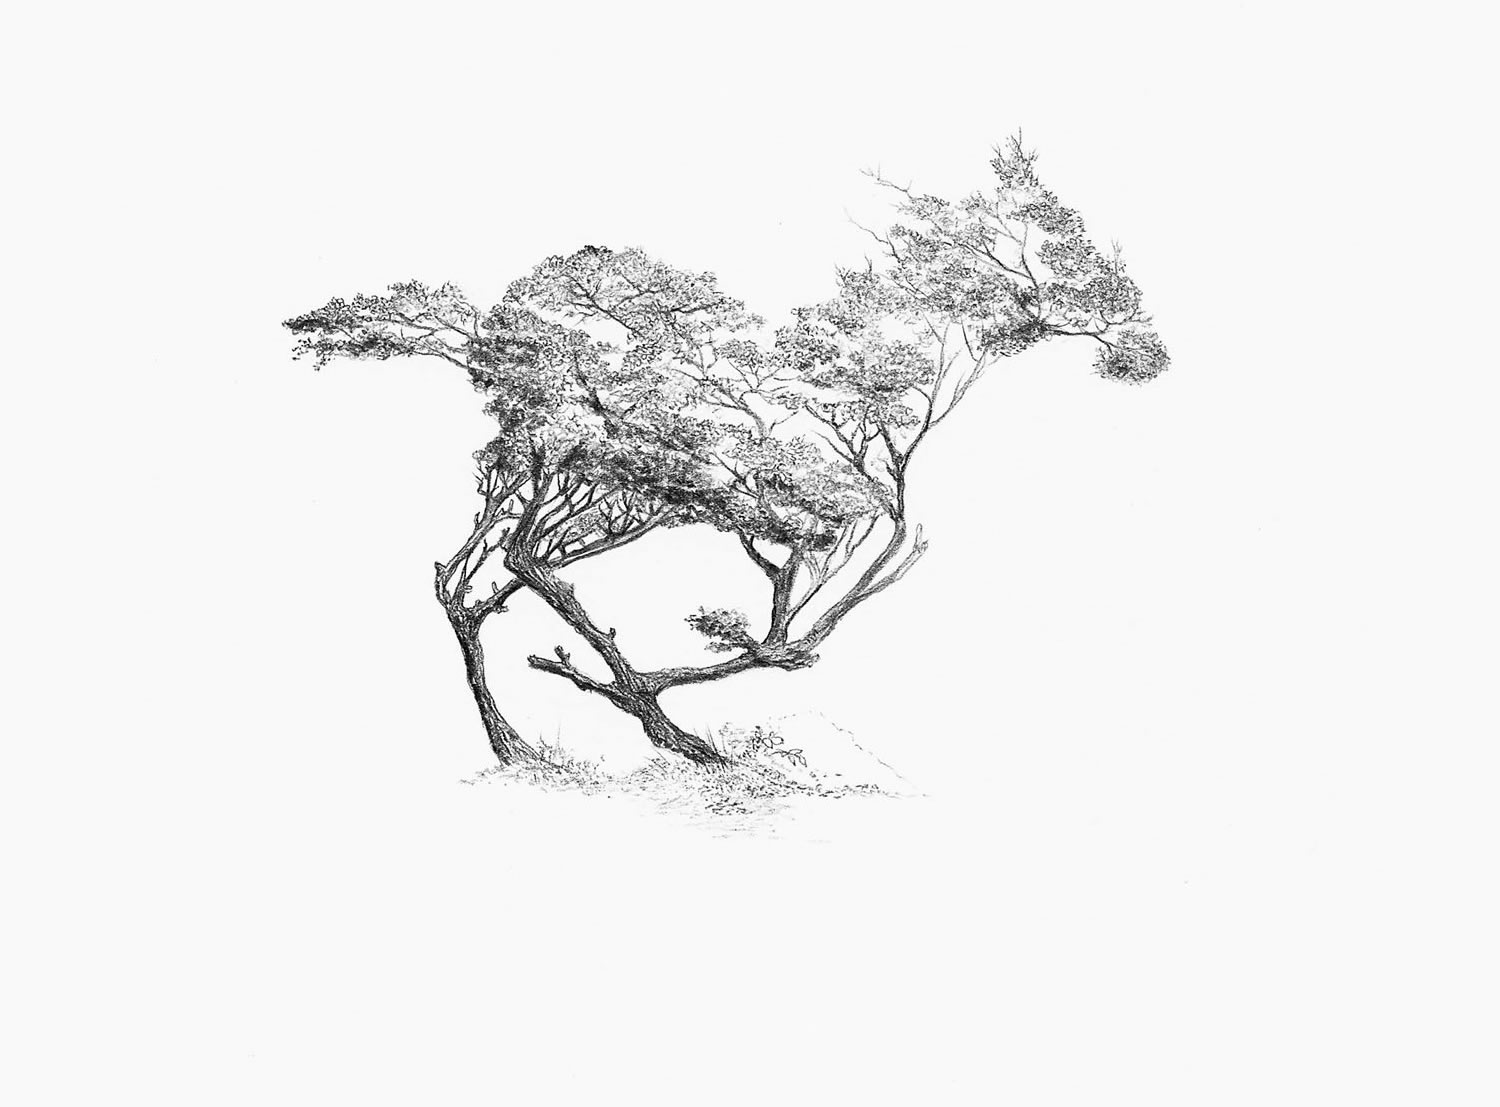 tree branches transform into a horse, optical illusion by Alejandro García Restrepo